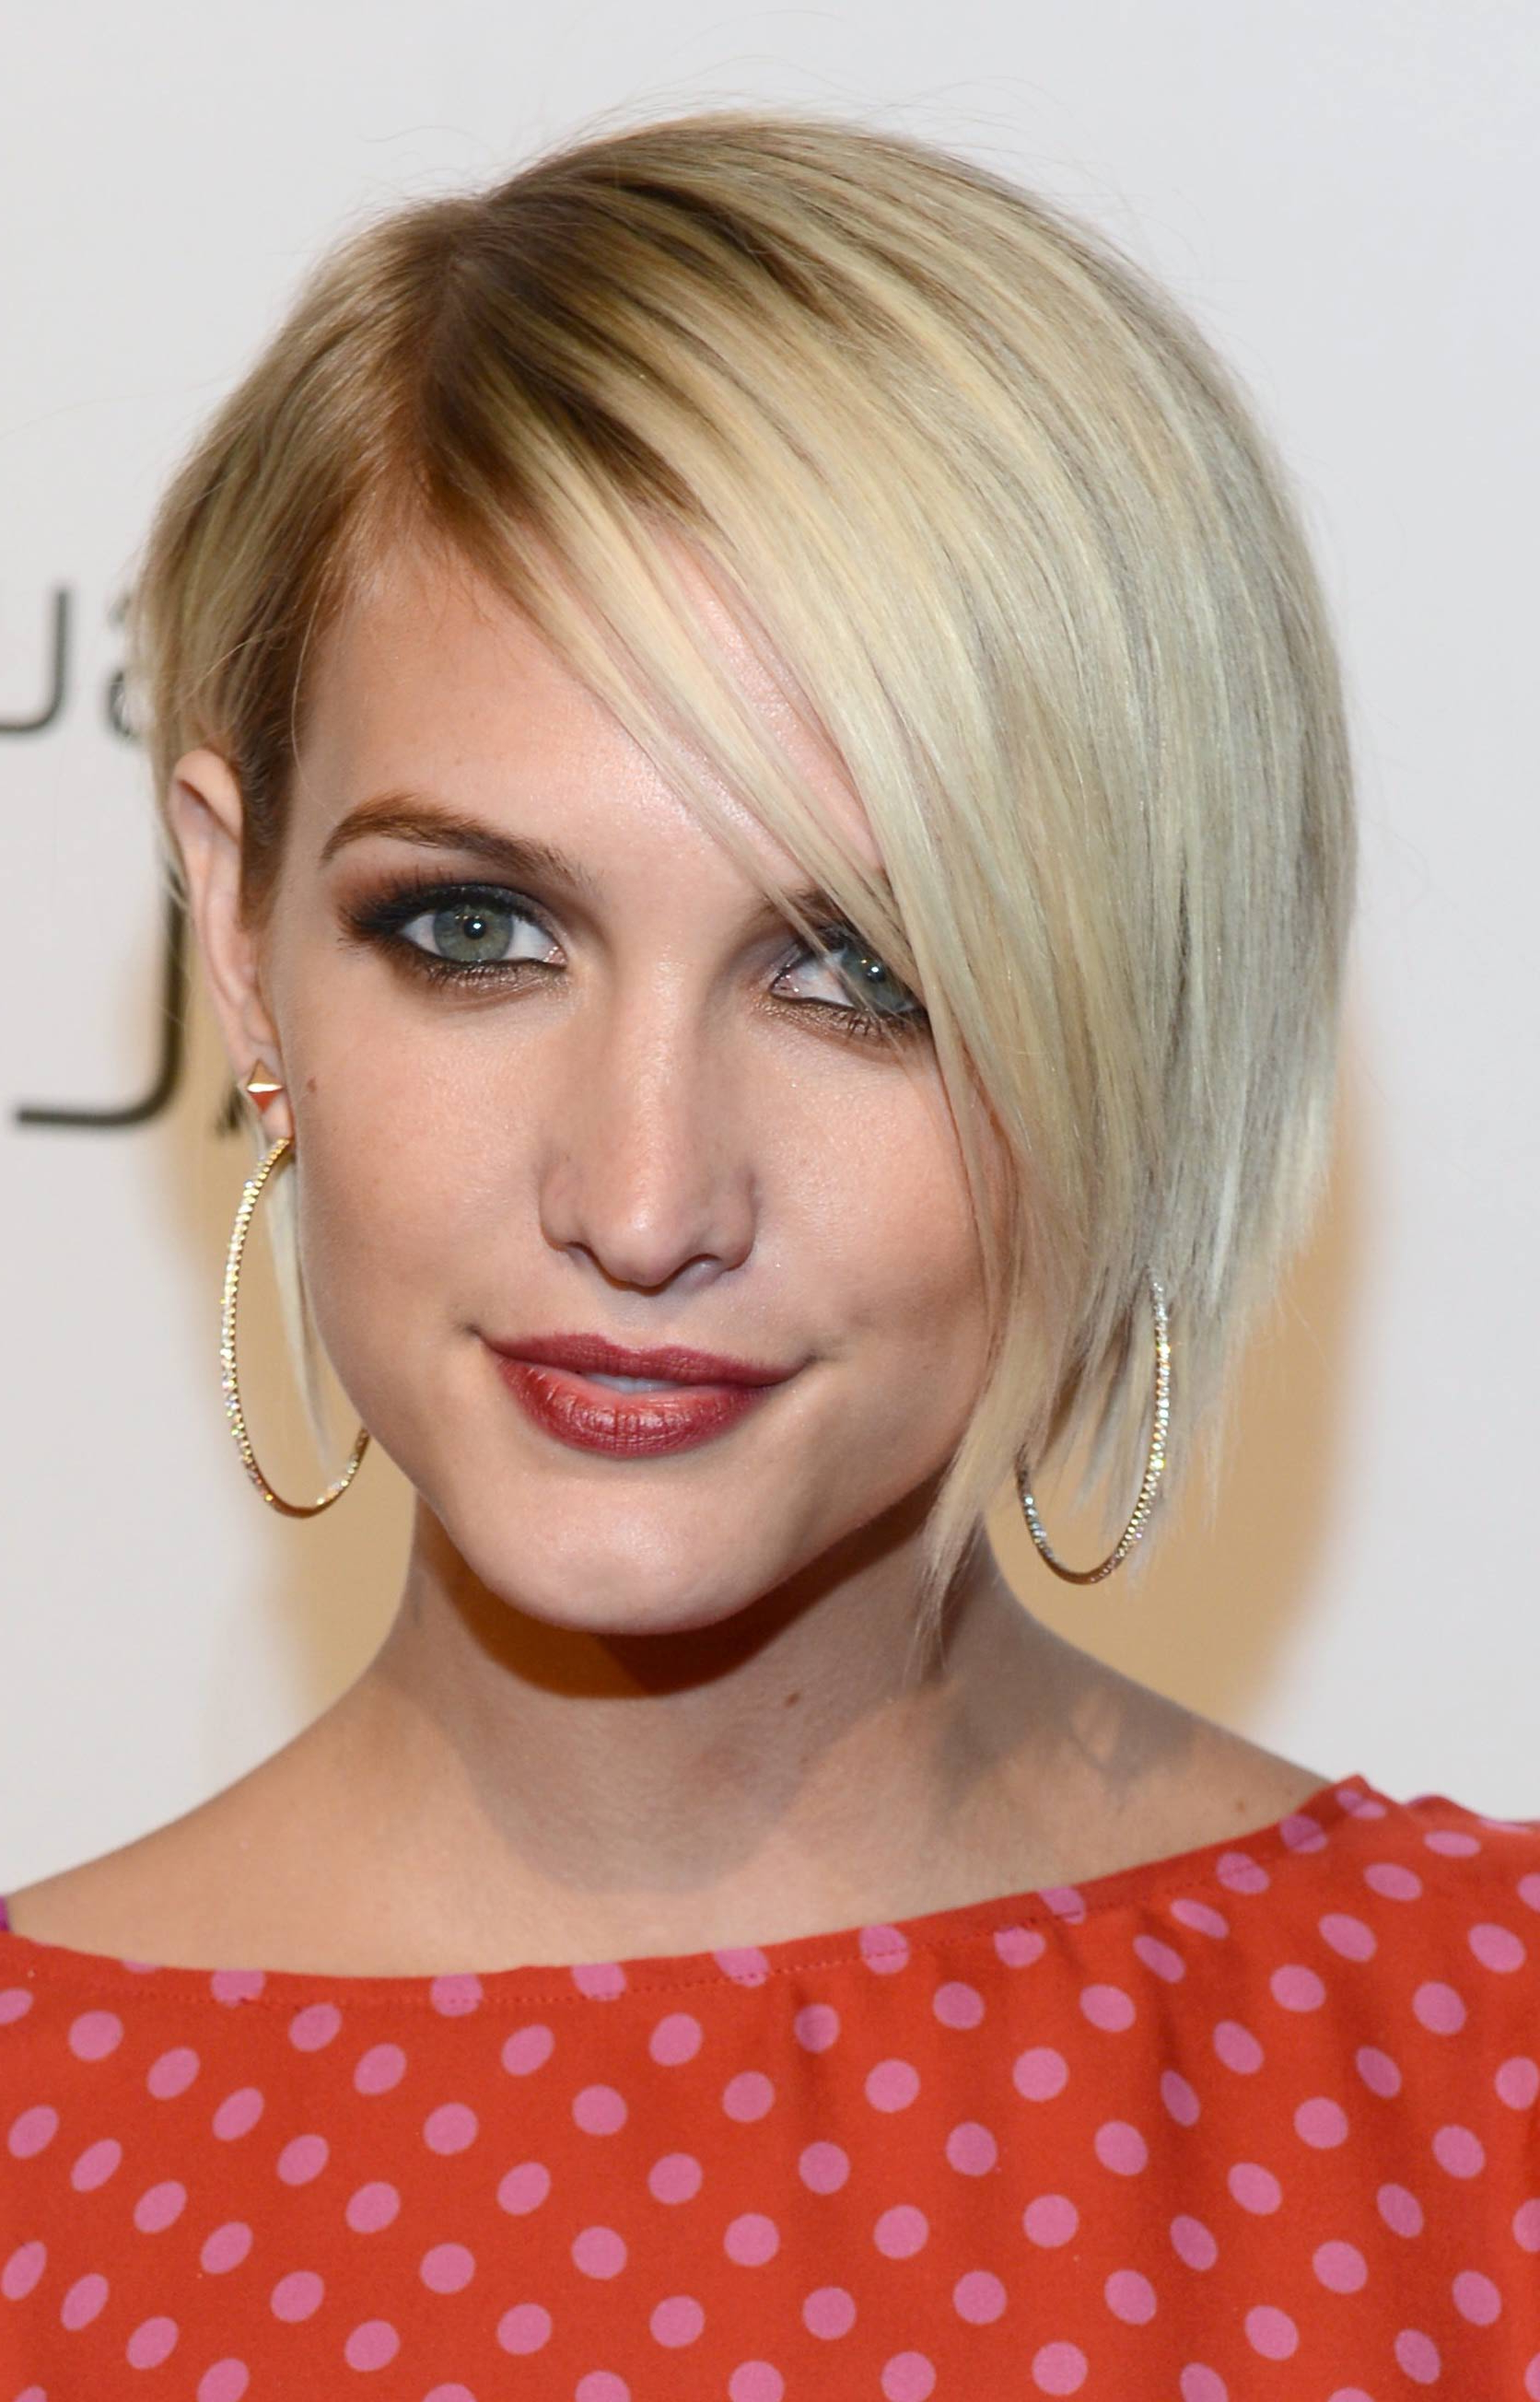 Asymmetric Hairstyles Short Hair – Hairstyle For Women & Man With Regard To Asymmetric Short Haircuts (Gallery 11 of 25)